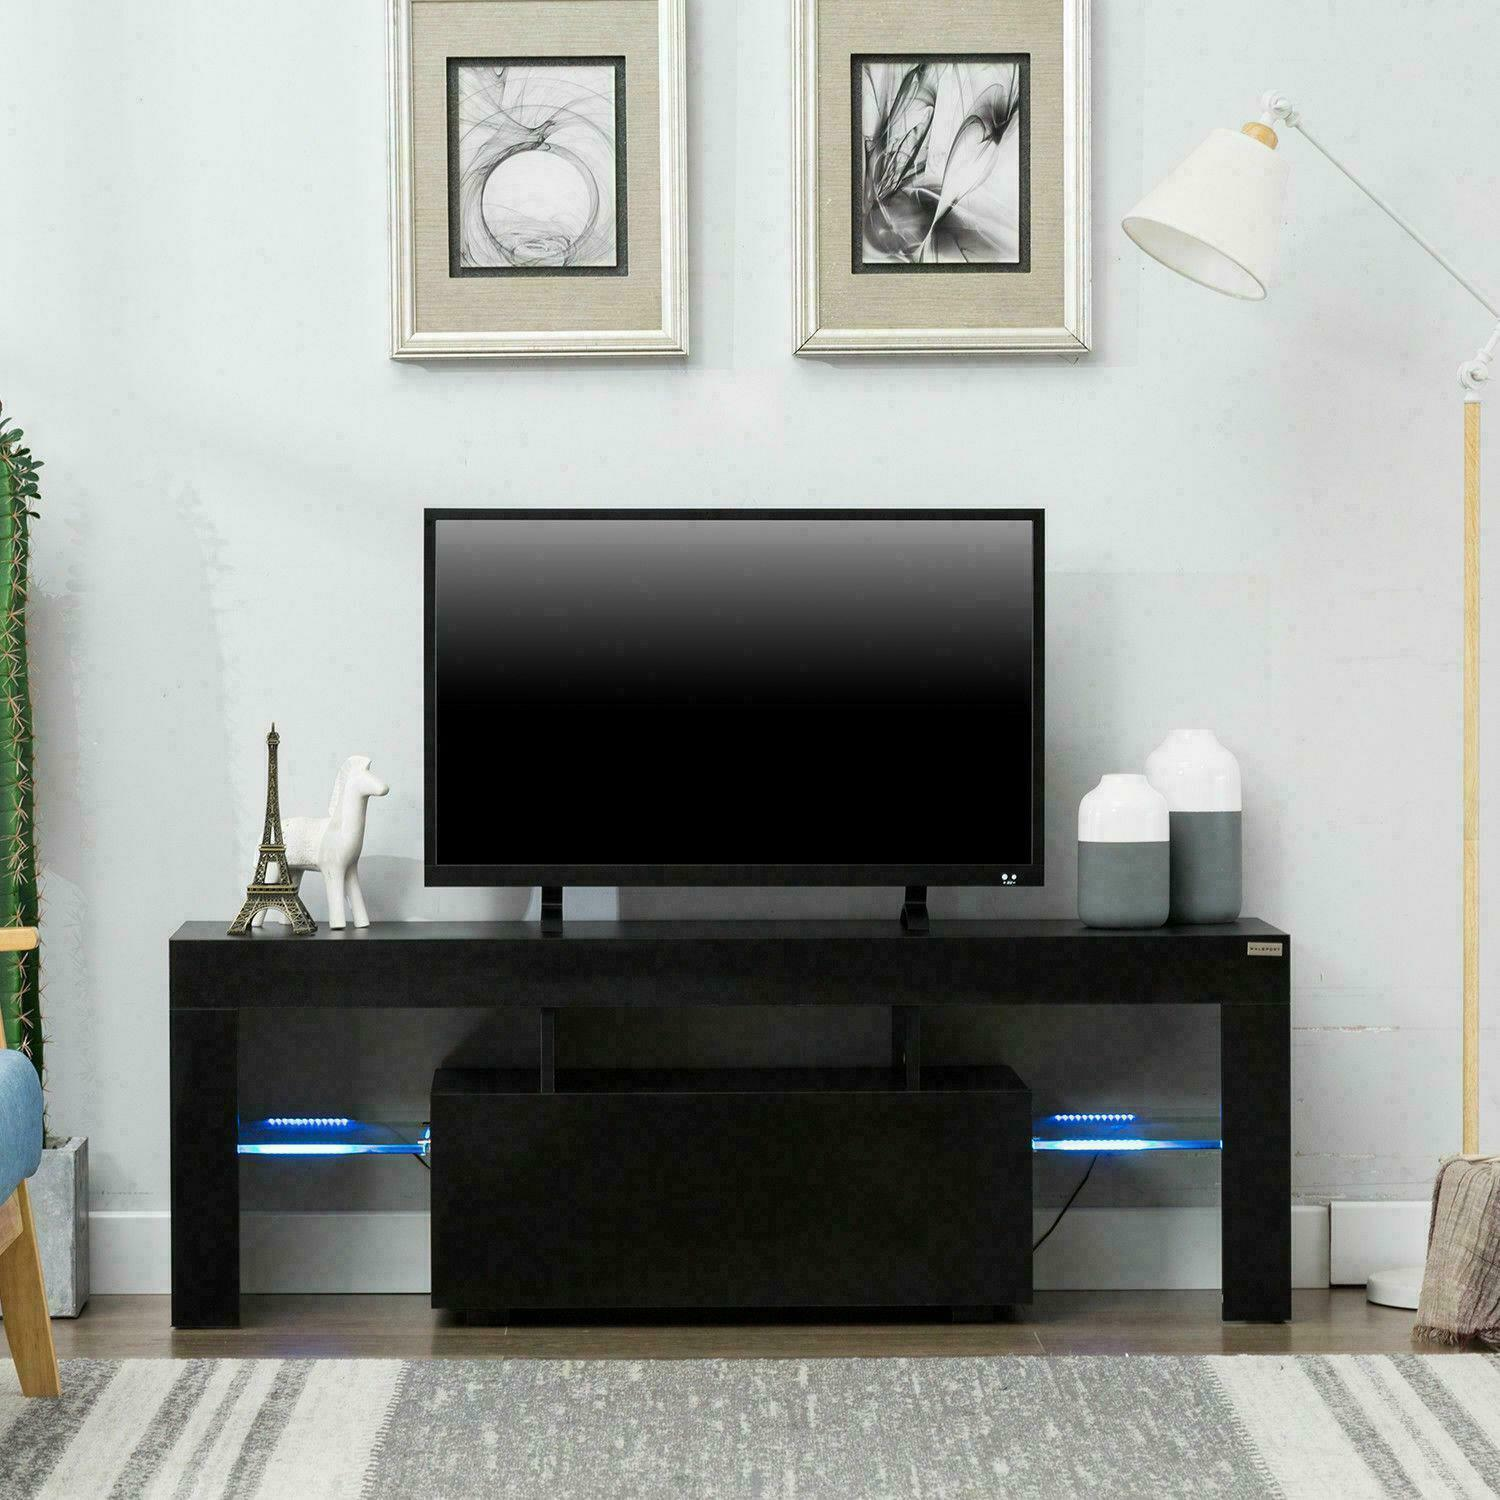 High Gloss Tv Stand Unit Cabinet With Led Lights Shelves Living Room Furniture For Sale Online Ebay